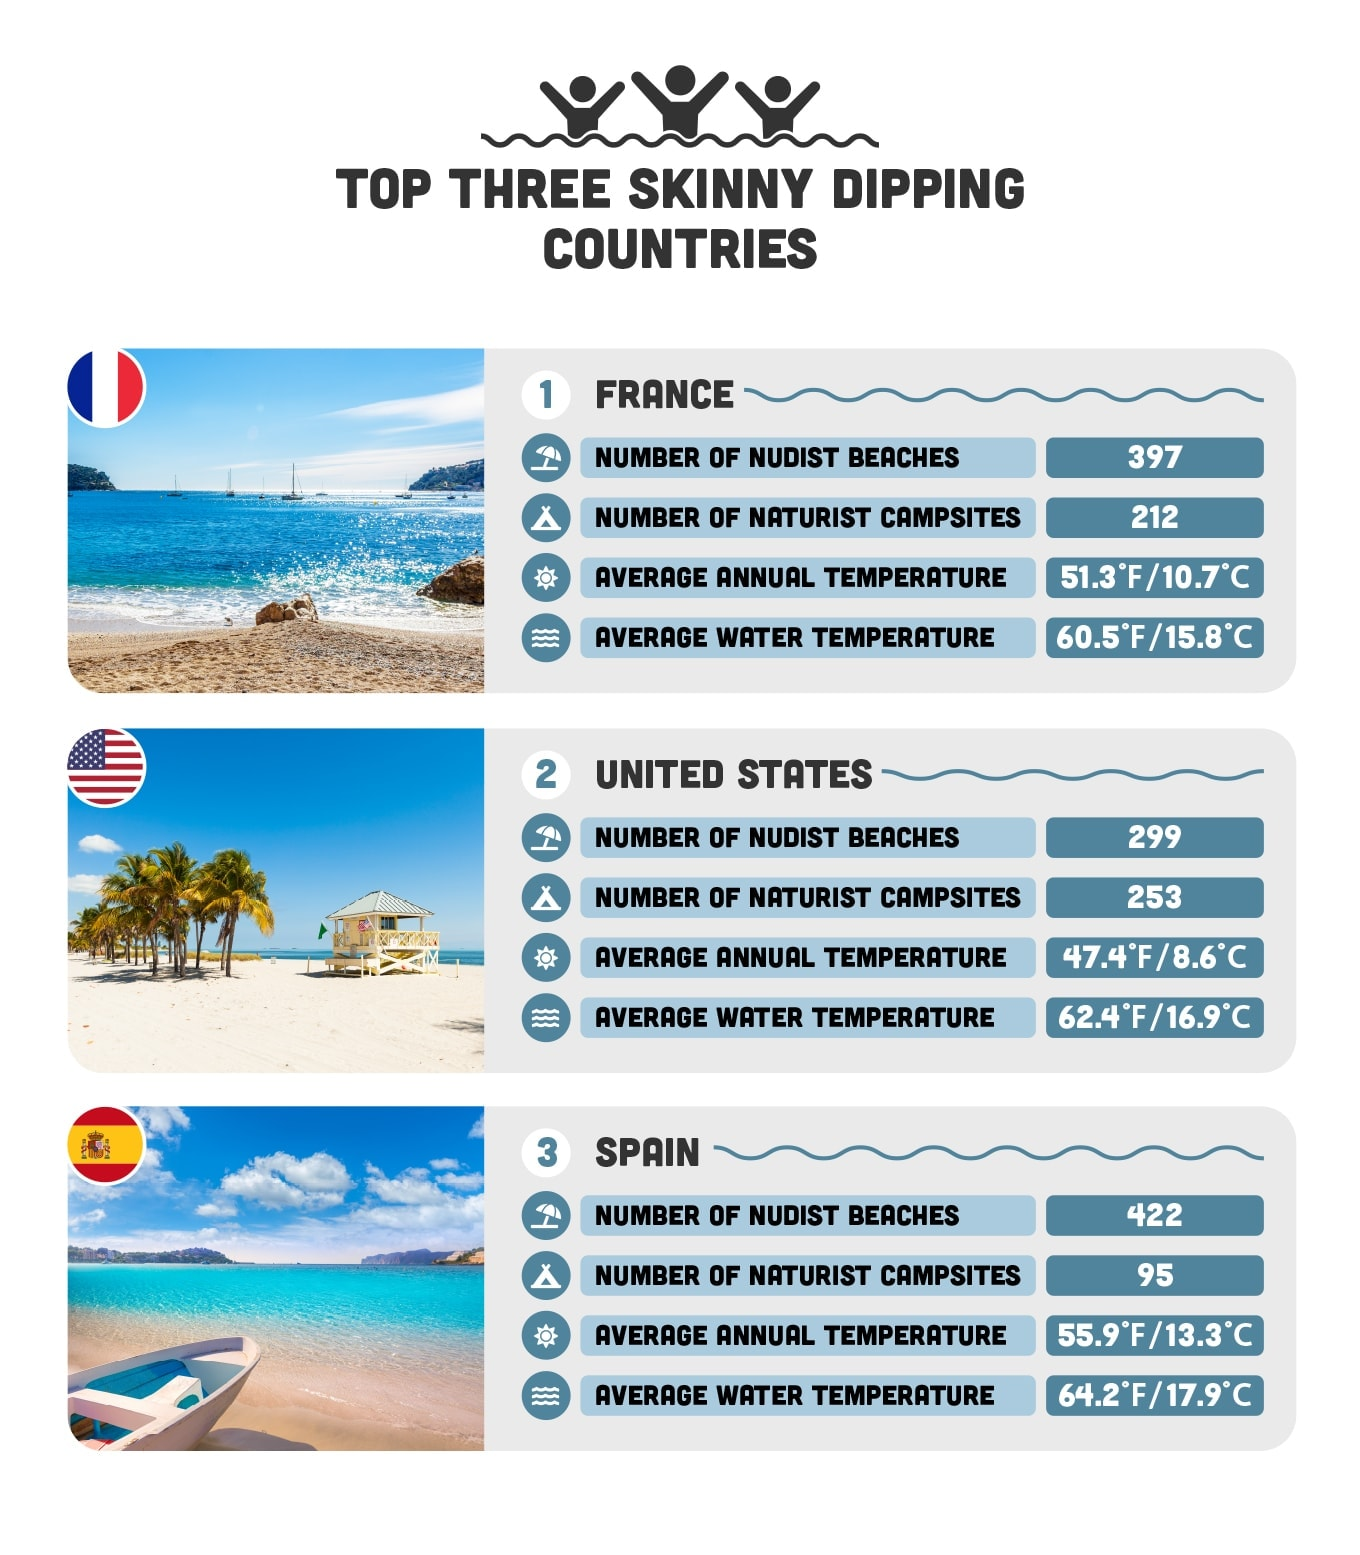 chart about top three countries for skinny dipping